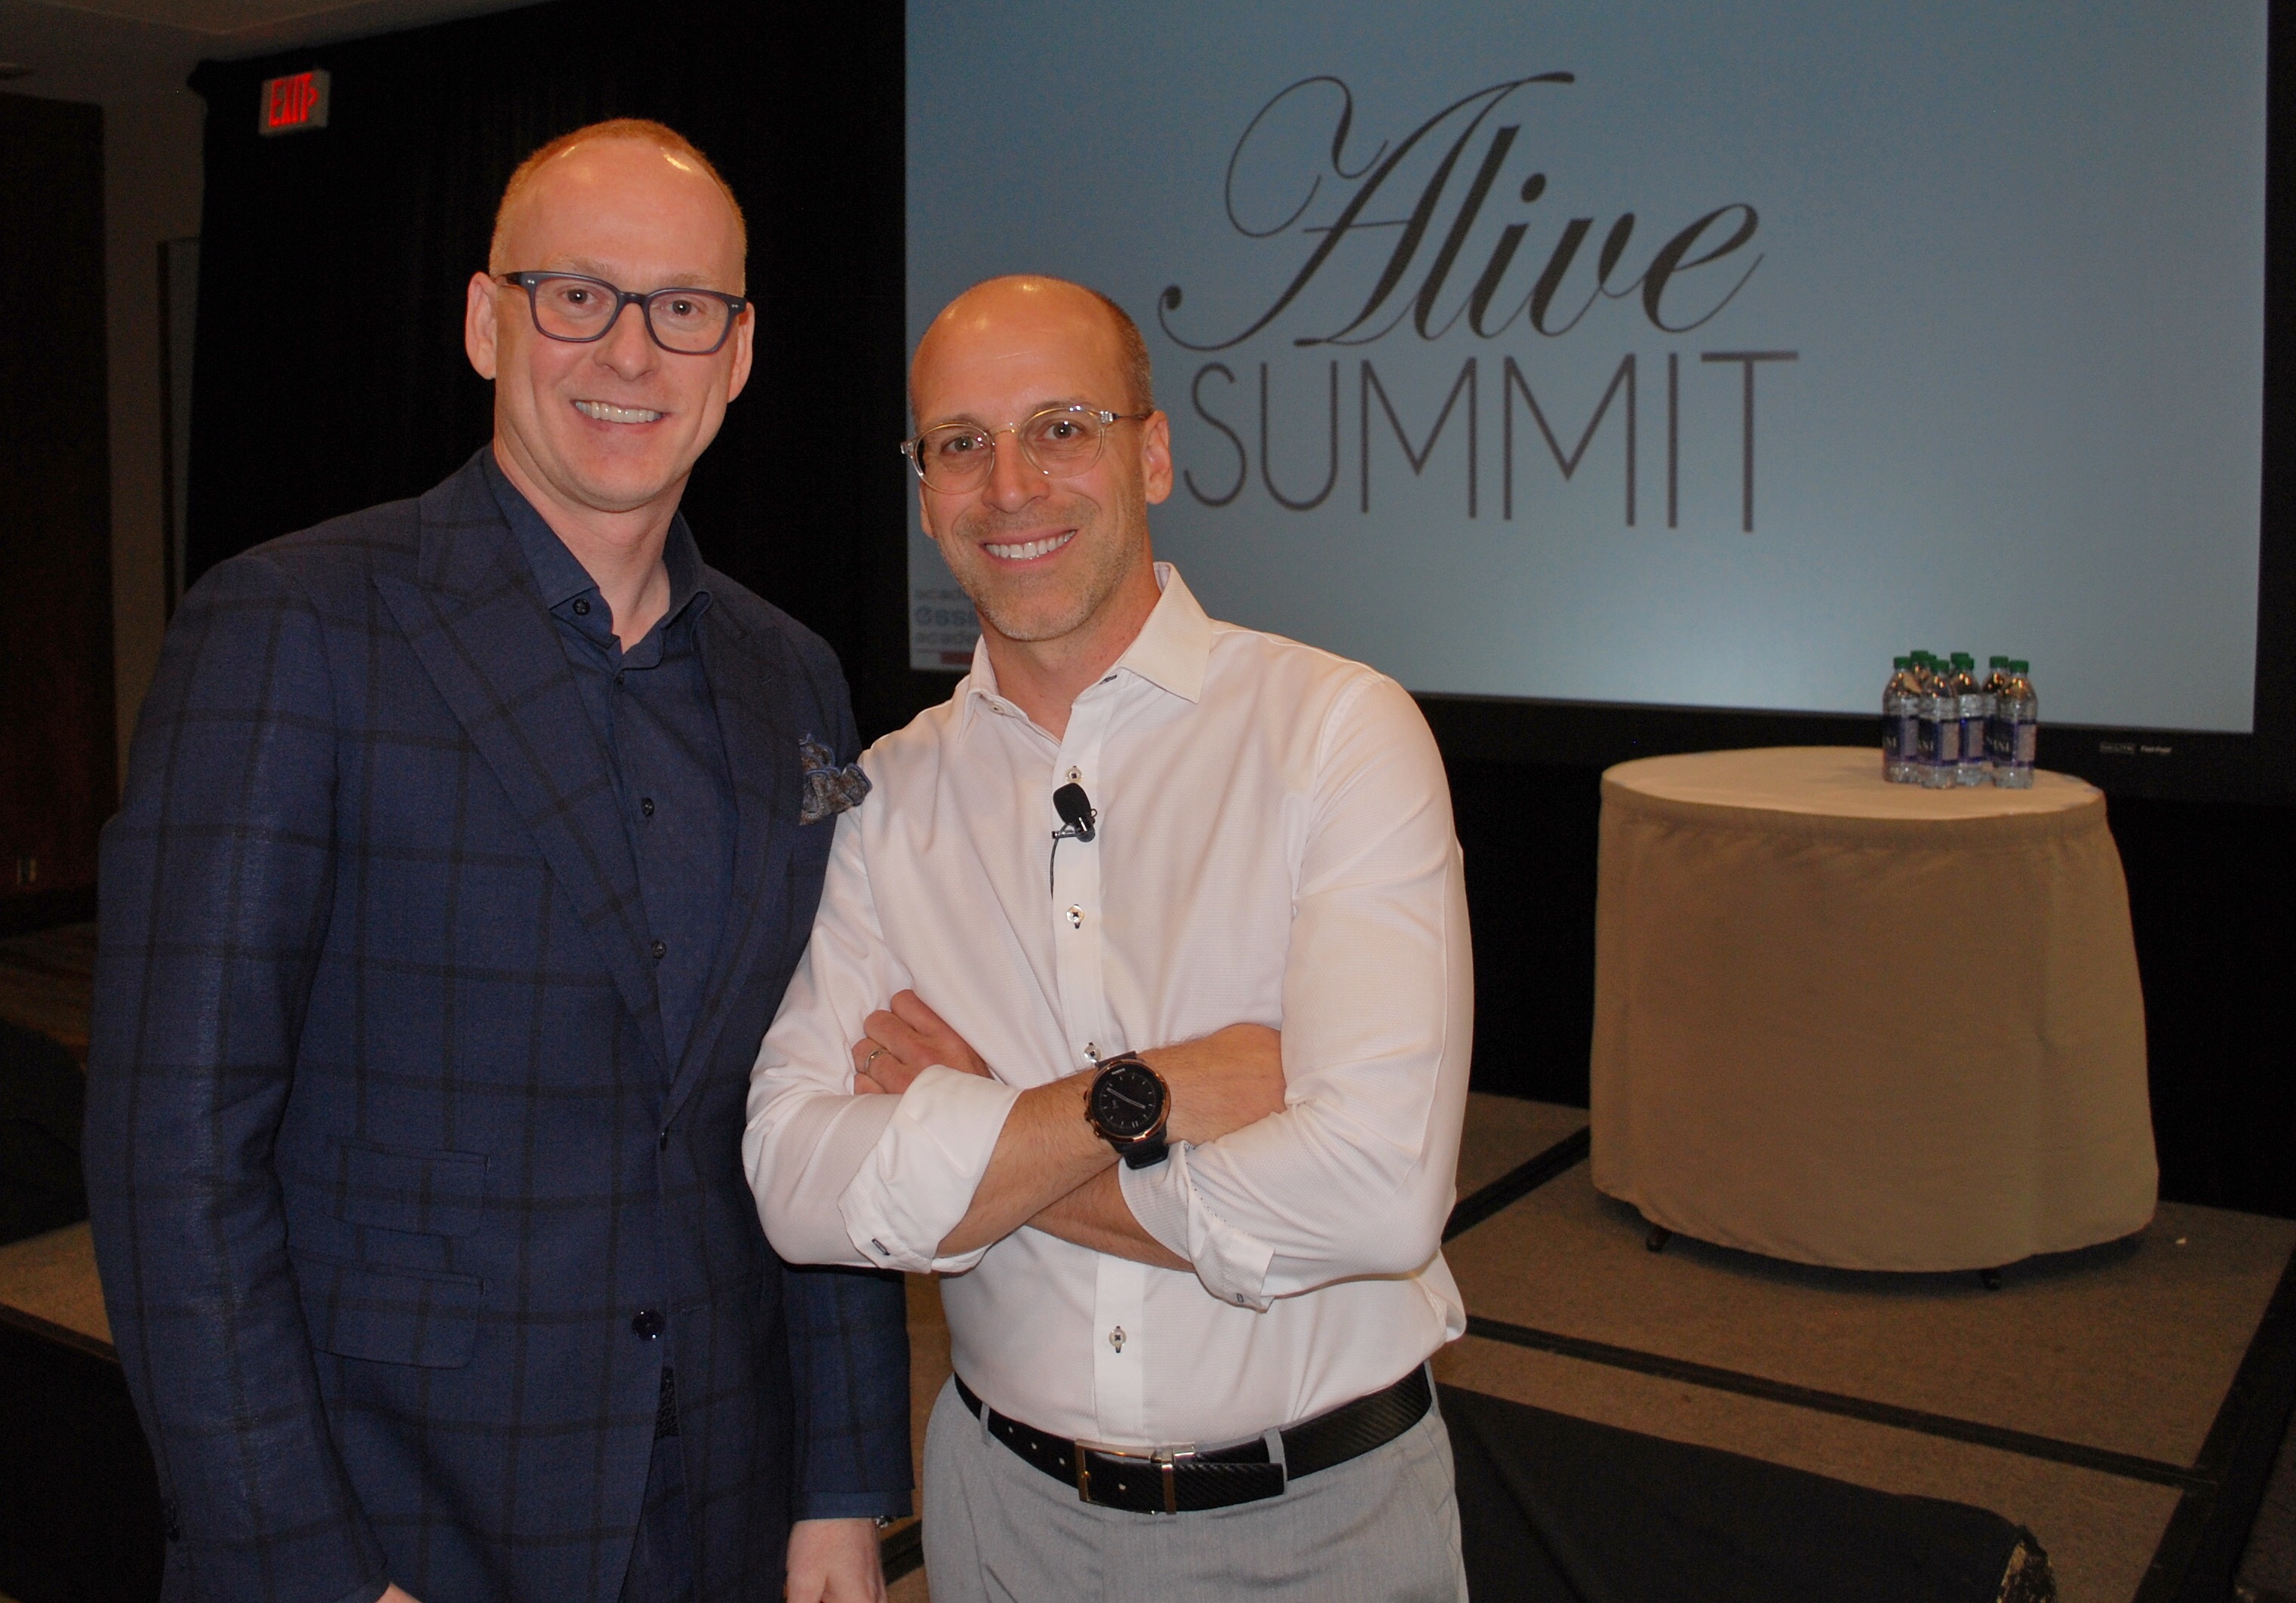 ECPs take part in Essilor Canada Alive Summit and Roadshow